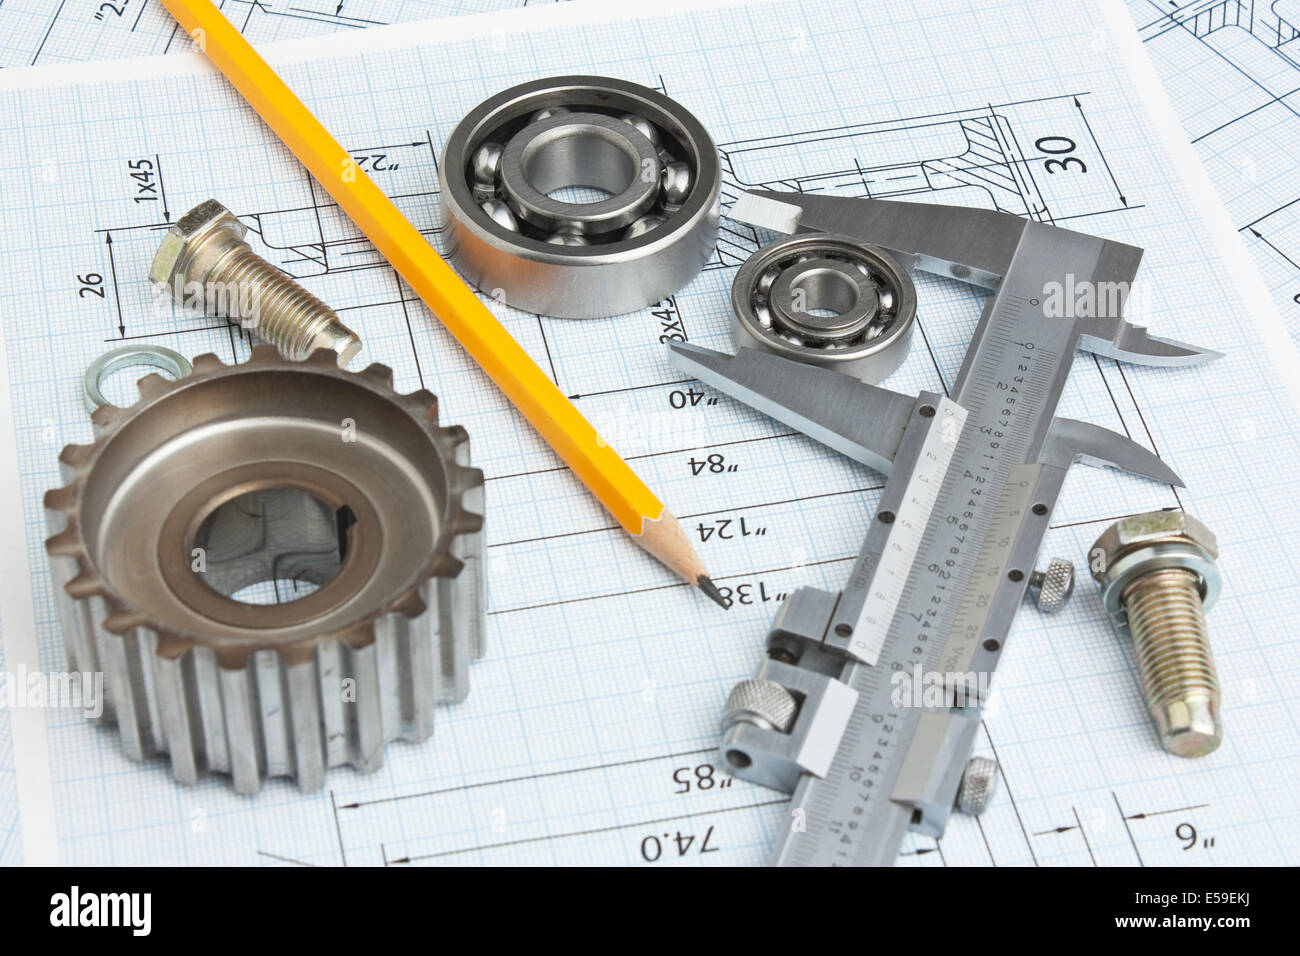 Technical Drawing Tools Stock Photos & Technical Drawing Tools Stock ...